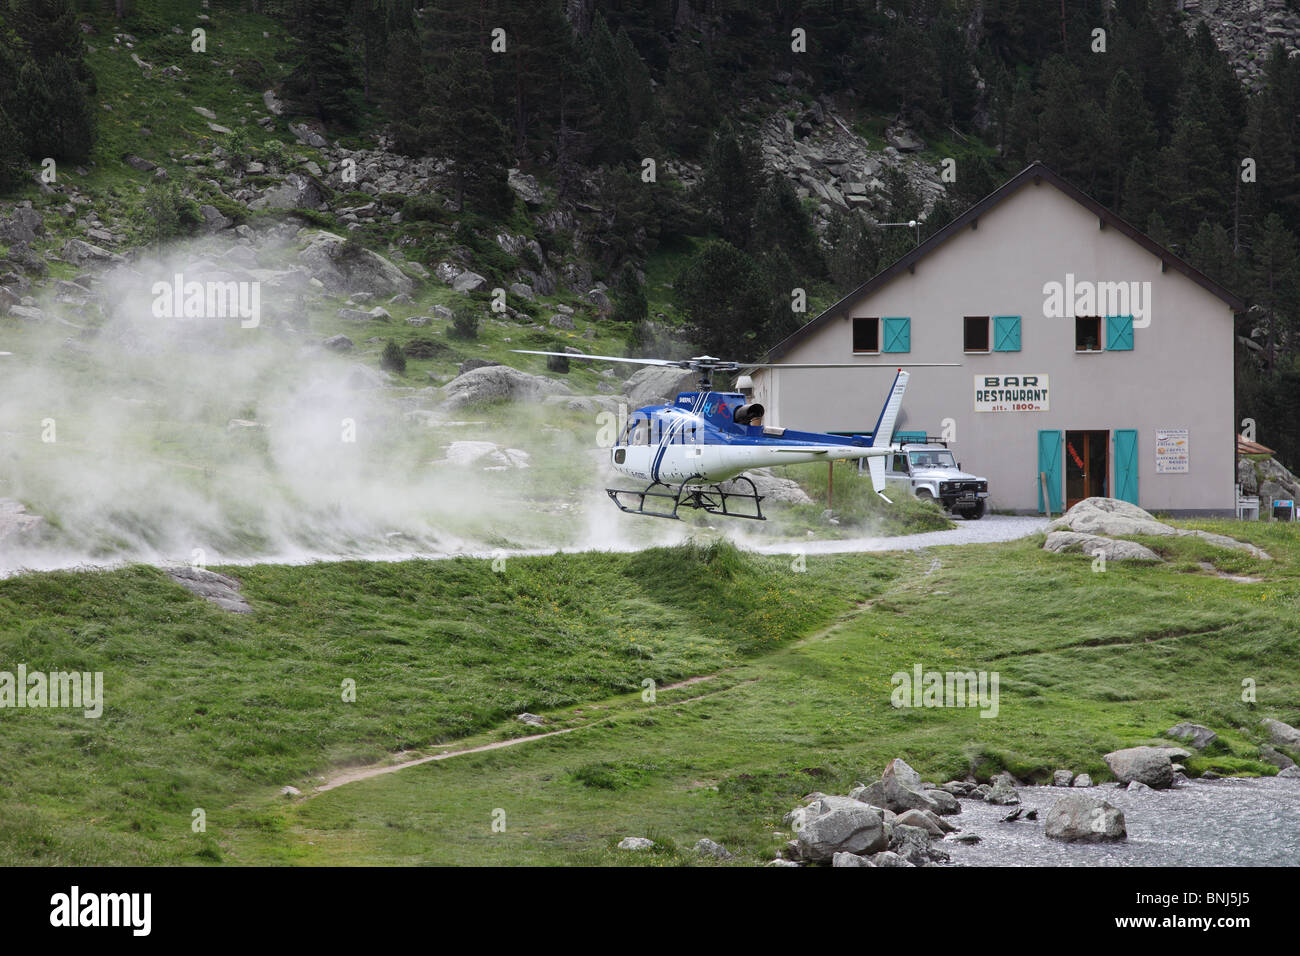 Helicopter Landing Next to a Restaurant at the Lac De Gaube in the French Pyrenees to Collect Supplies - Stock Image